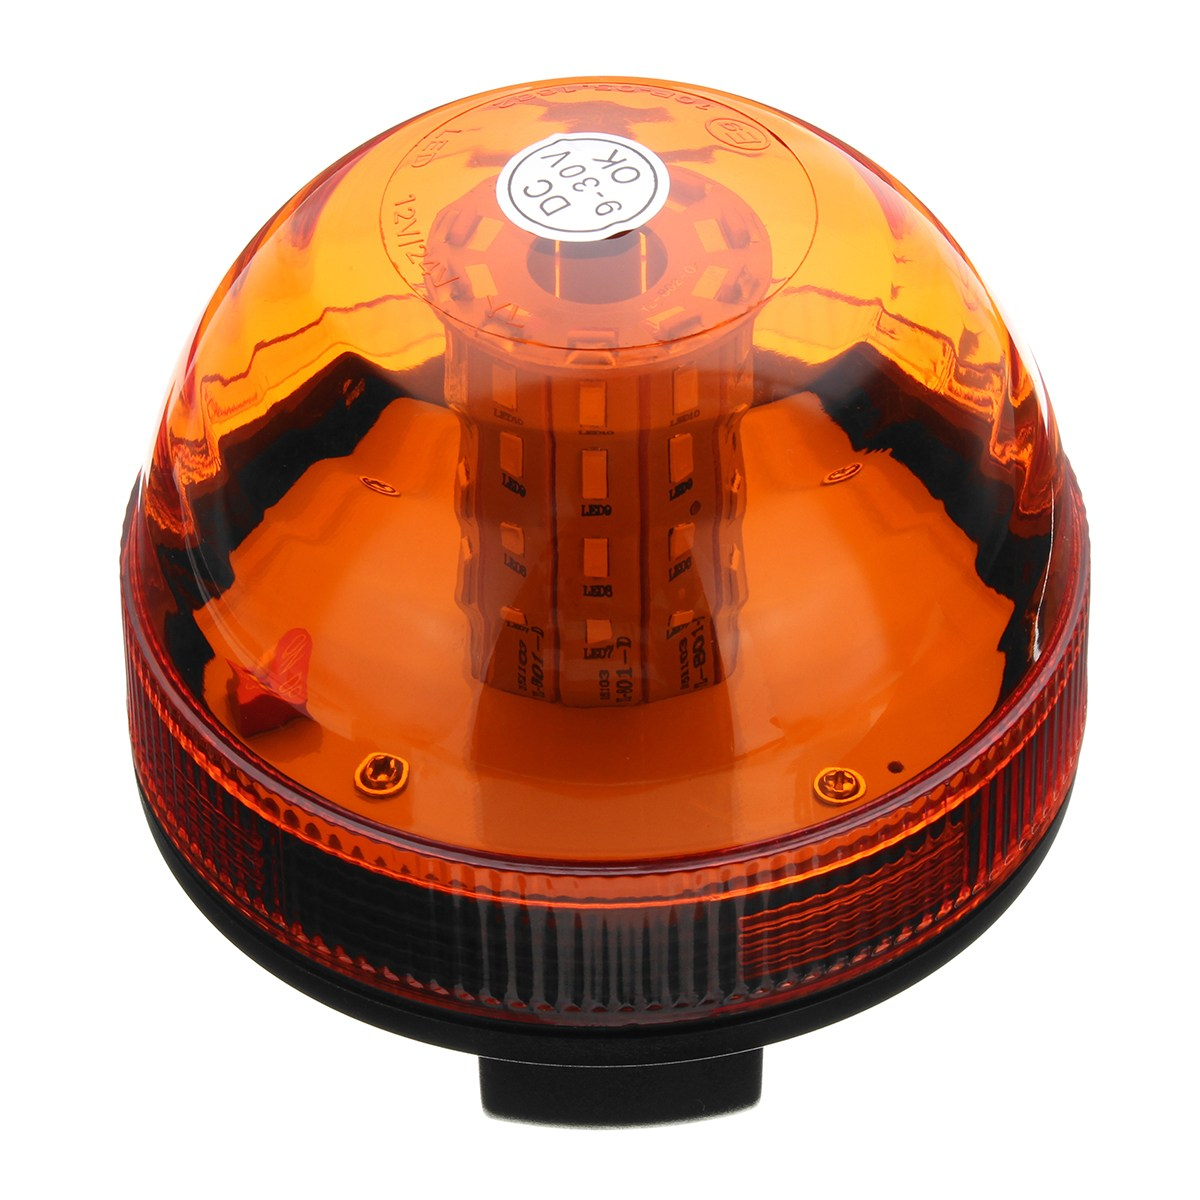 NEW Safurance 40 LED Rotating Flashing Amber Beacon Flexible Tractor Warning Light Roadway Safety